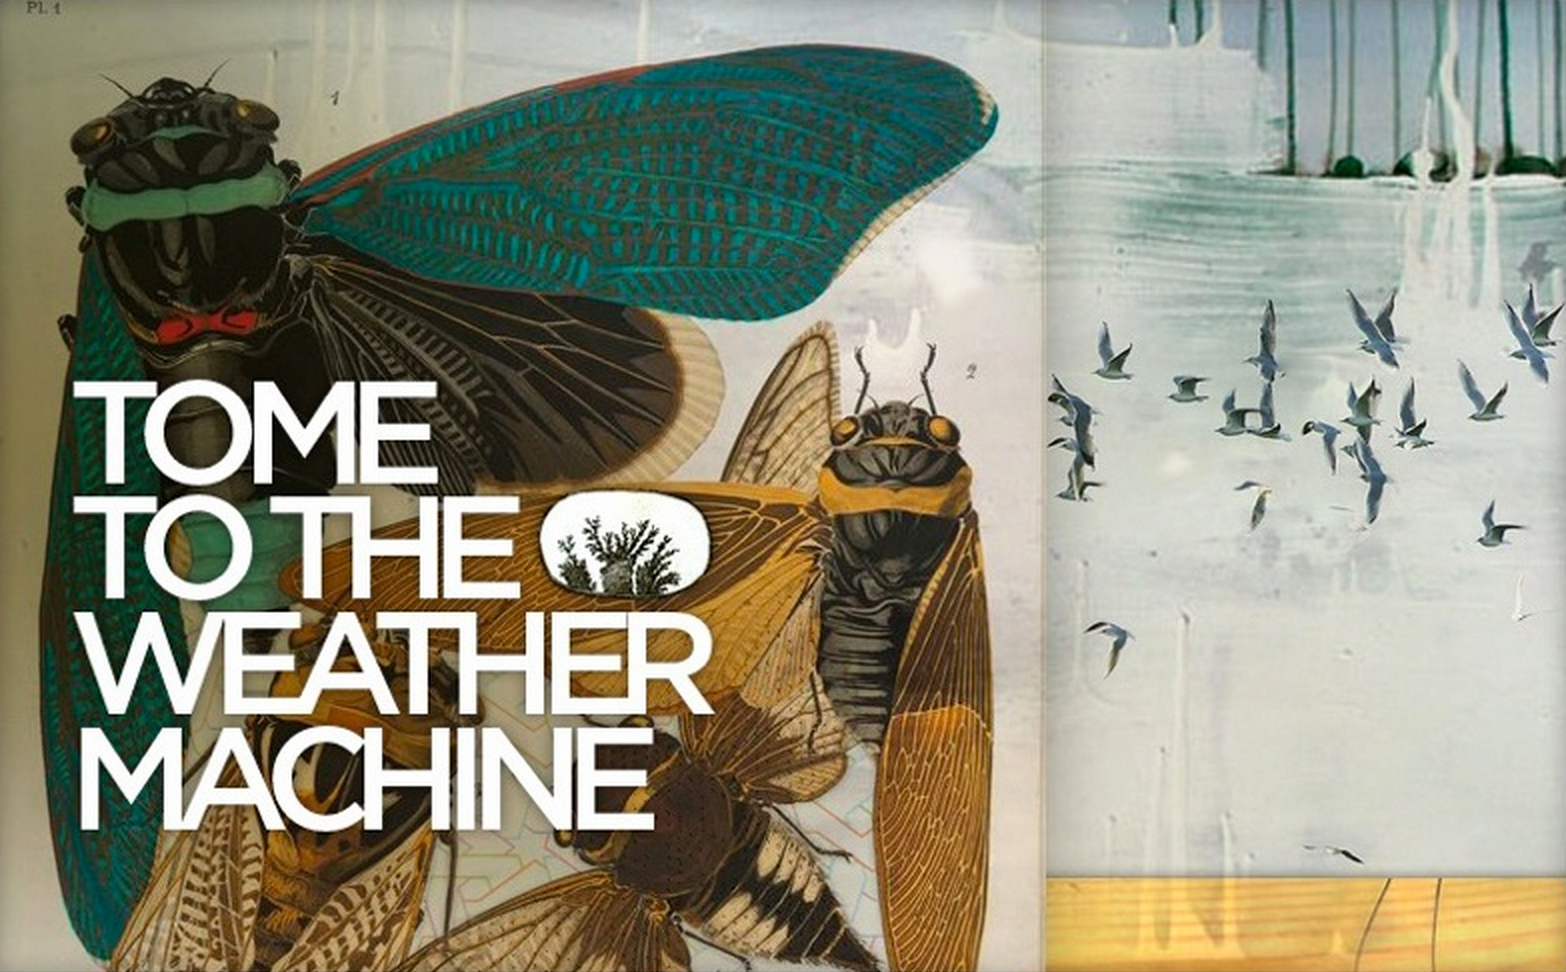 Tome to the Weather Machine review 'Which is Worse'